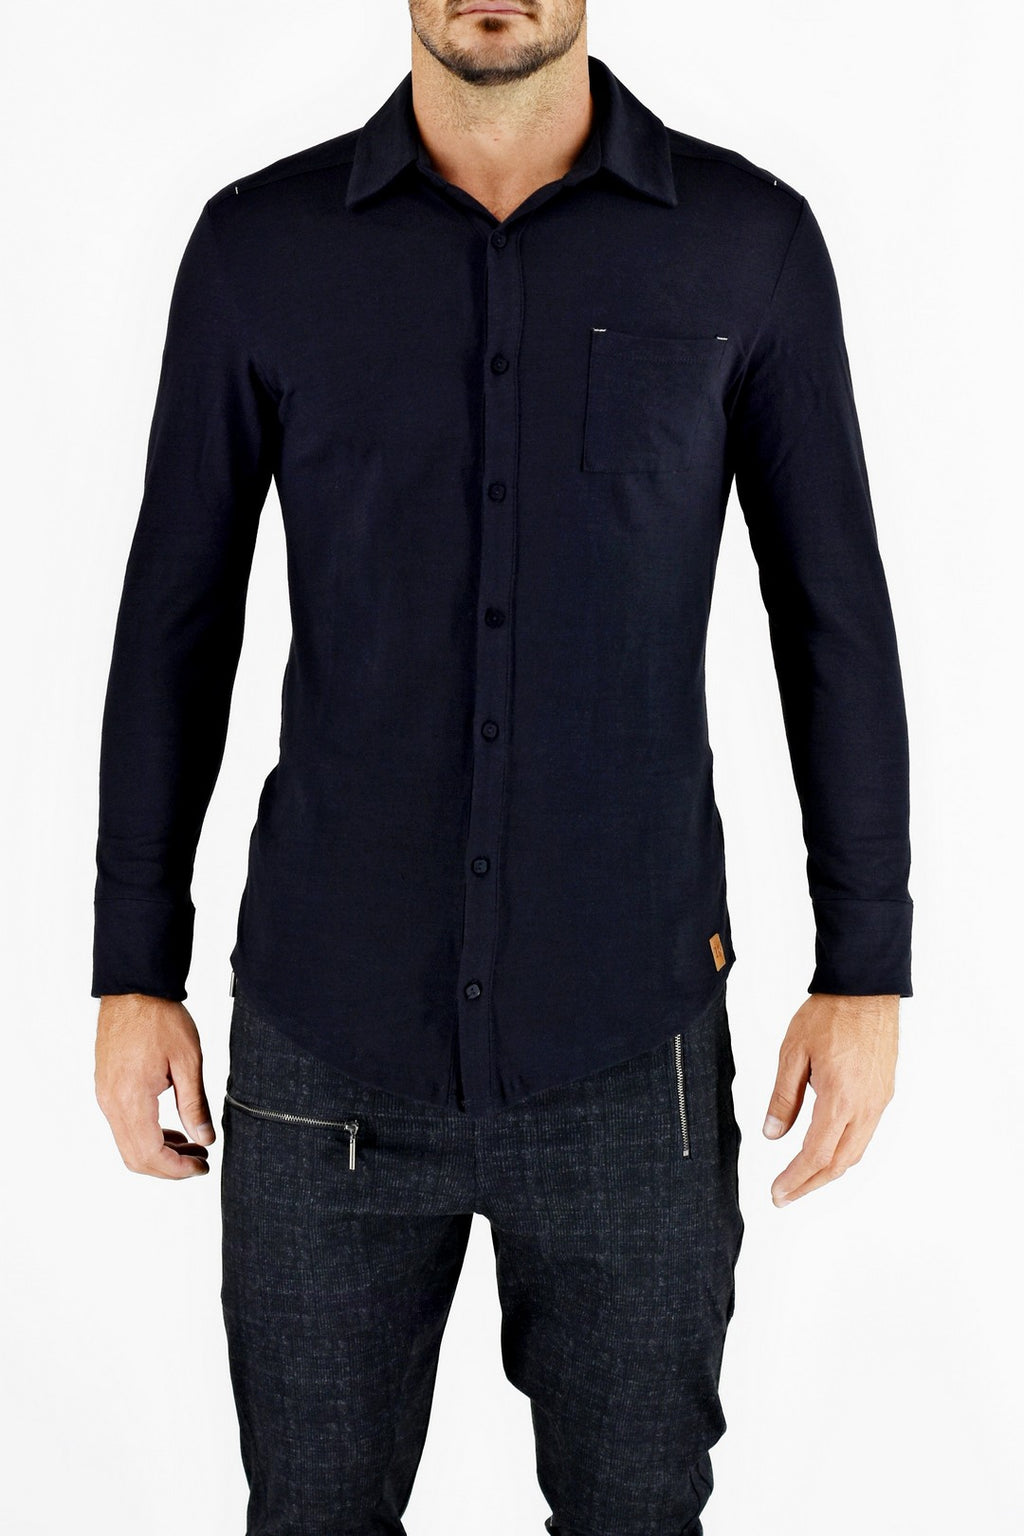 Black Cotton Knit Button Through Shirt